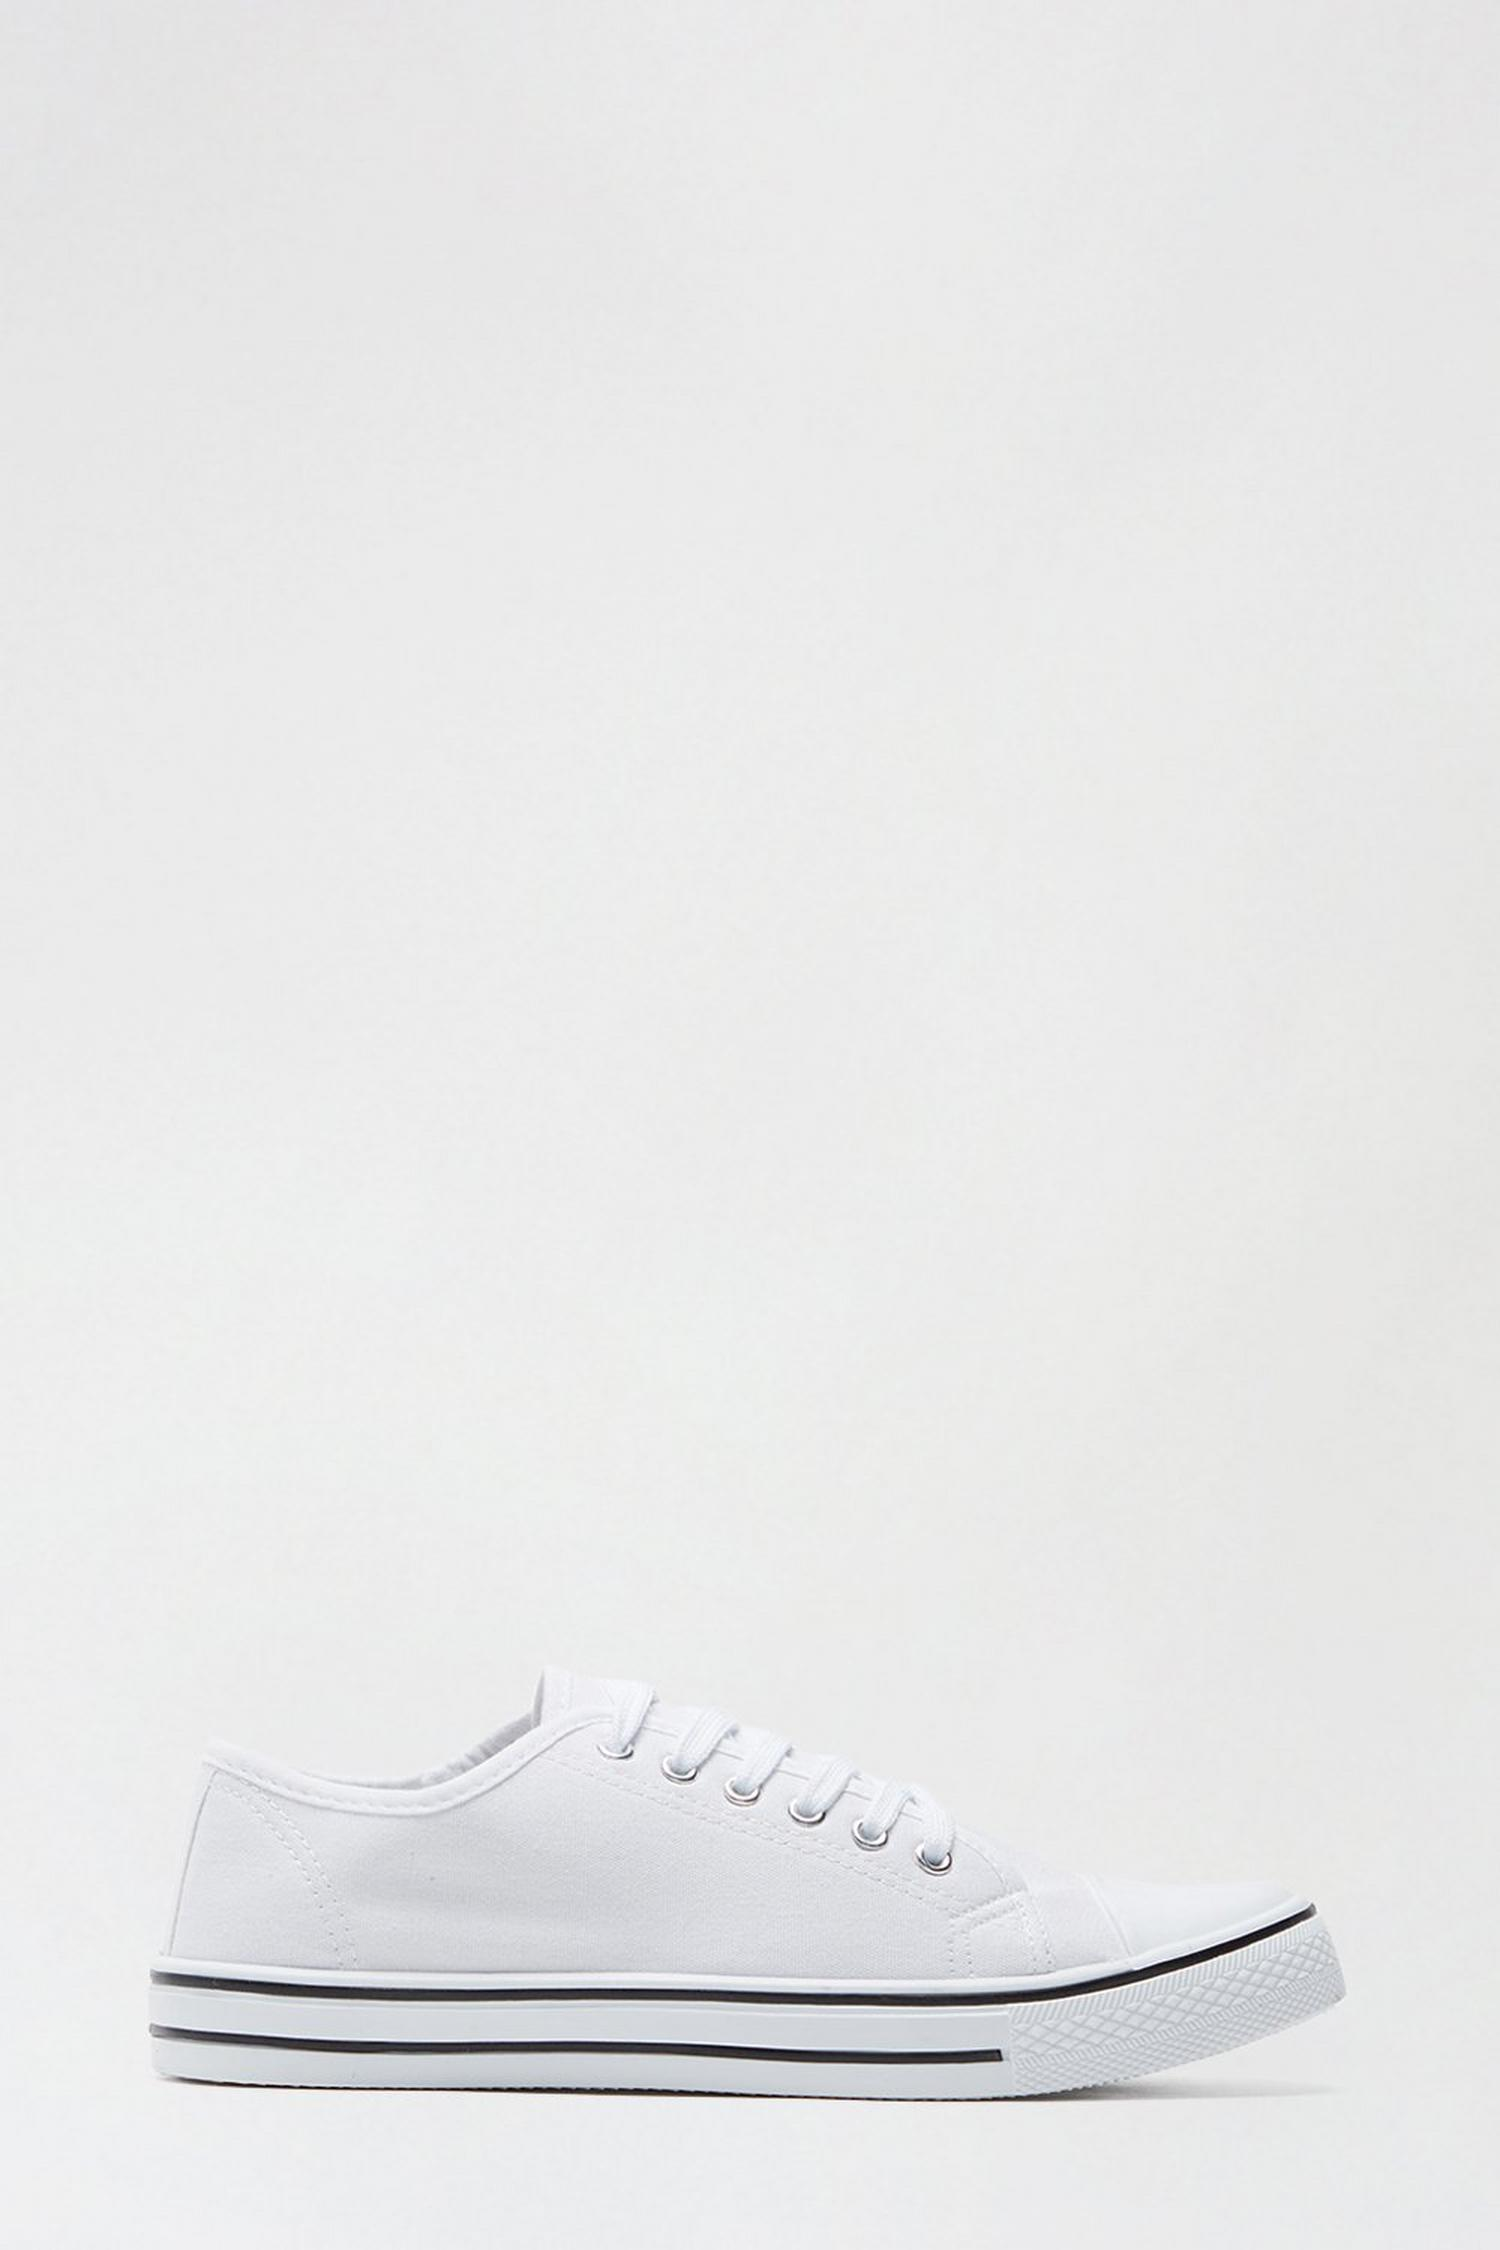 173 White India Canvas Lace Up Trainer image number 1